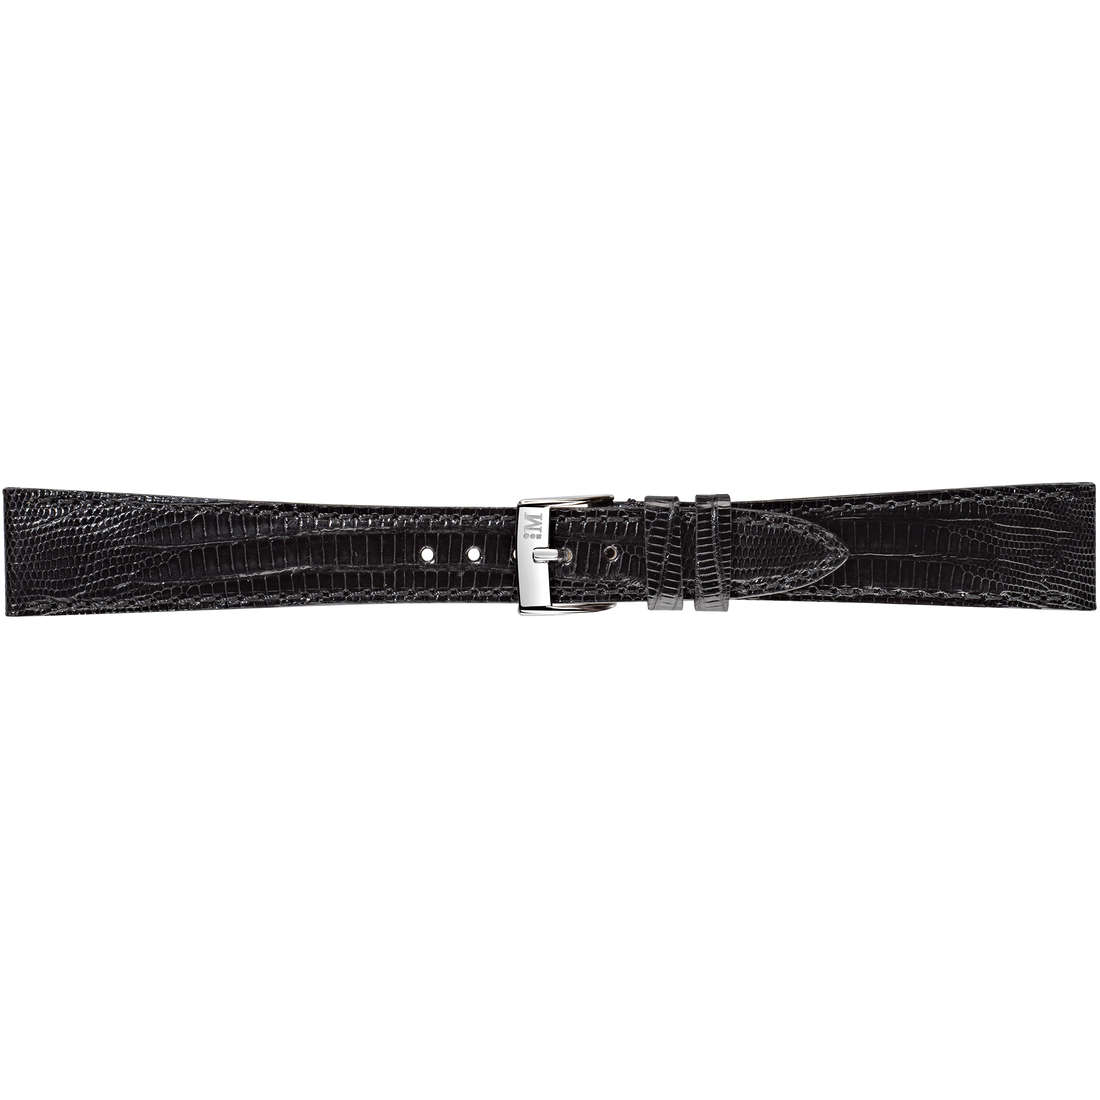 watch watch bands watch straps man Morellato Pelli Preziose A01U2213041019CR18